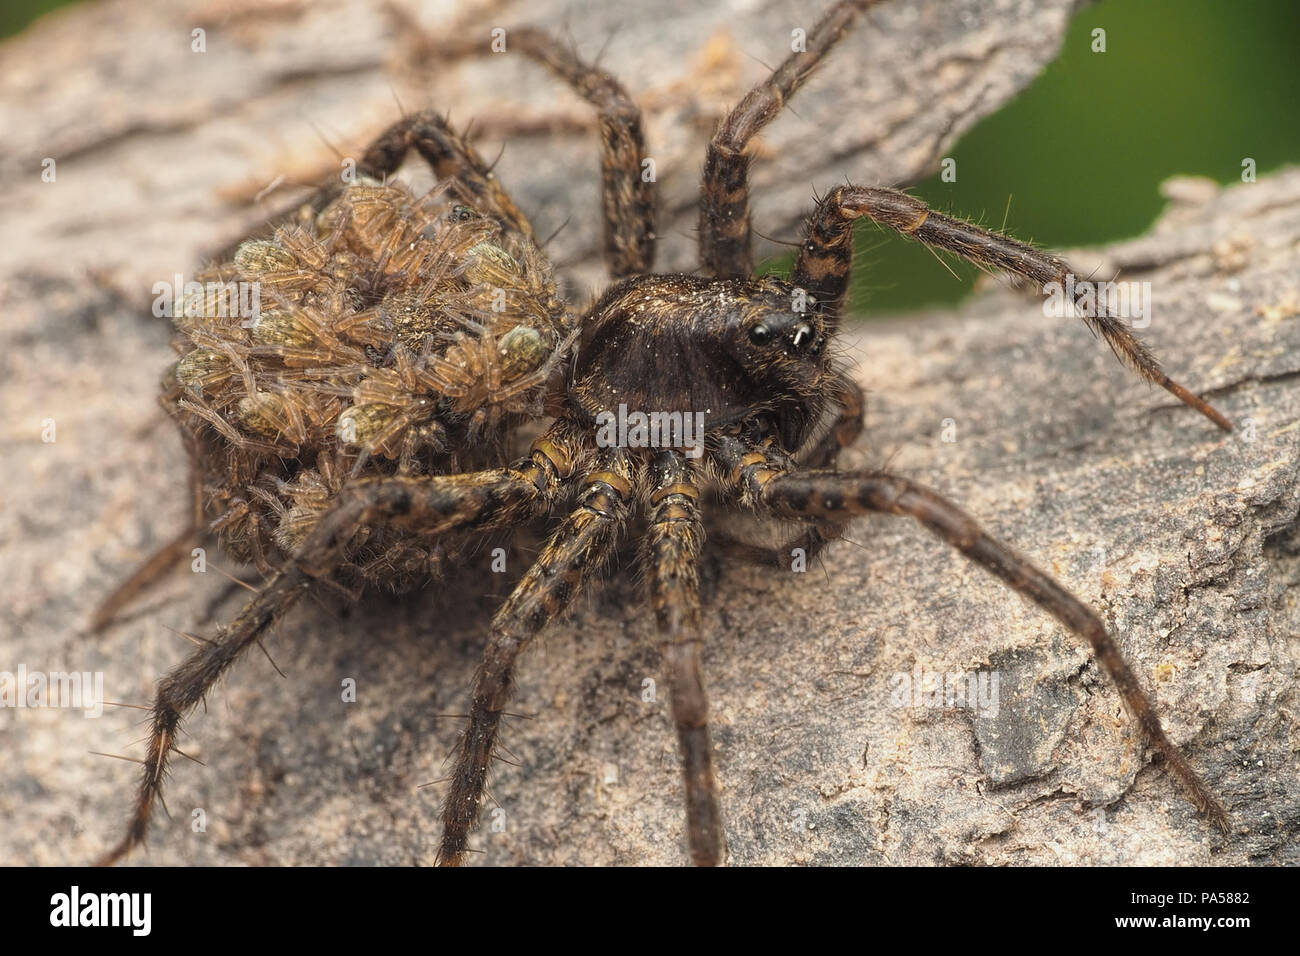 Wolf Spider with spiderlings on her back. Tipperary, Ireland - Stock Image